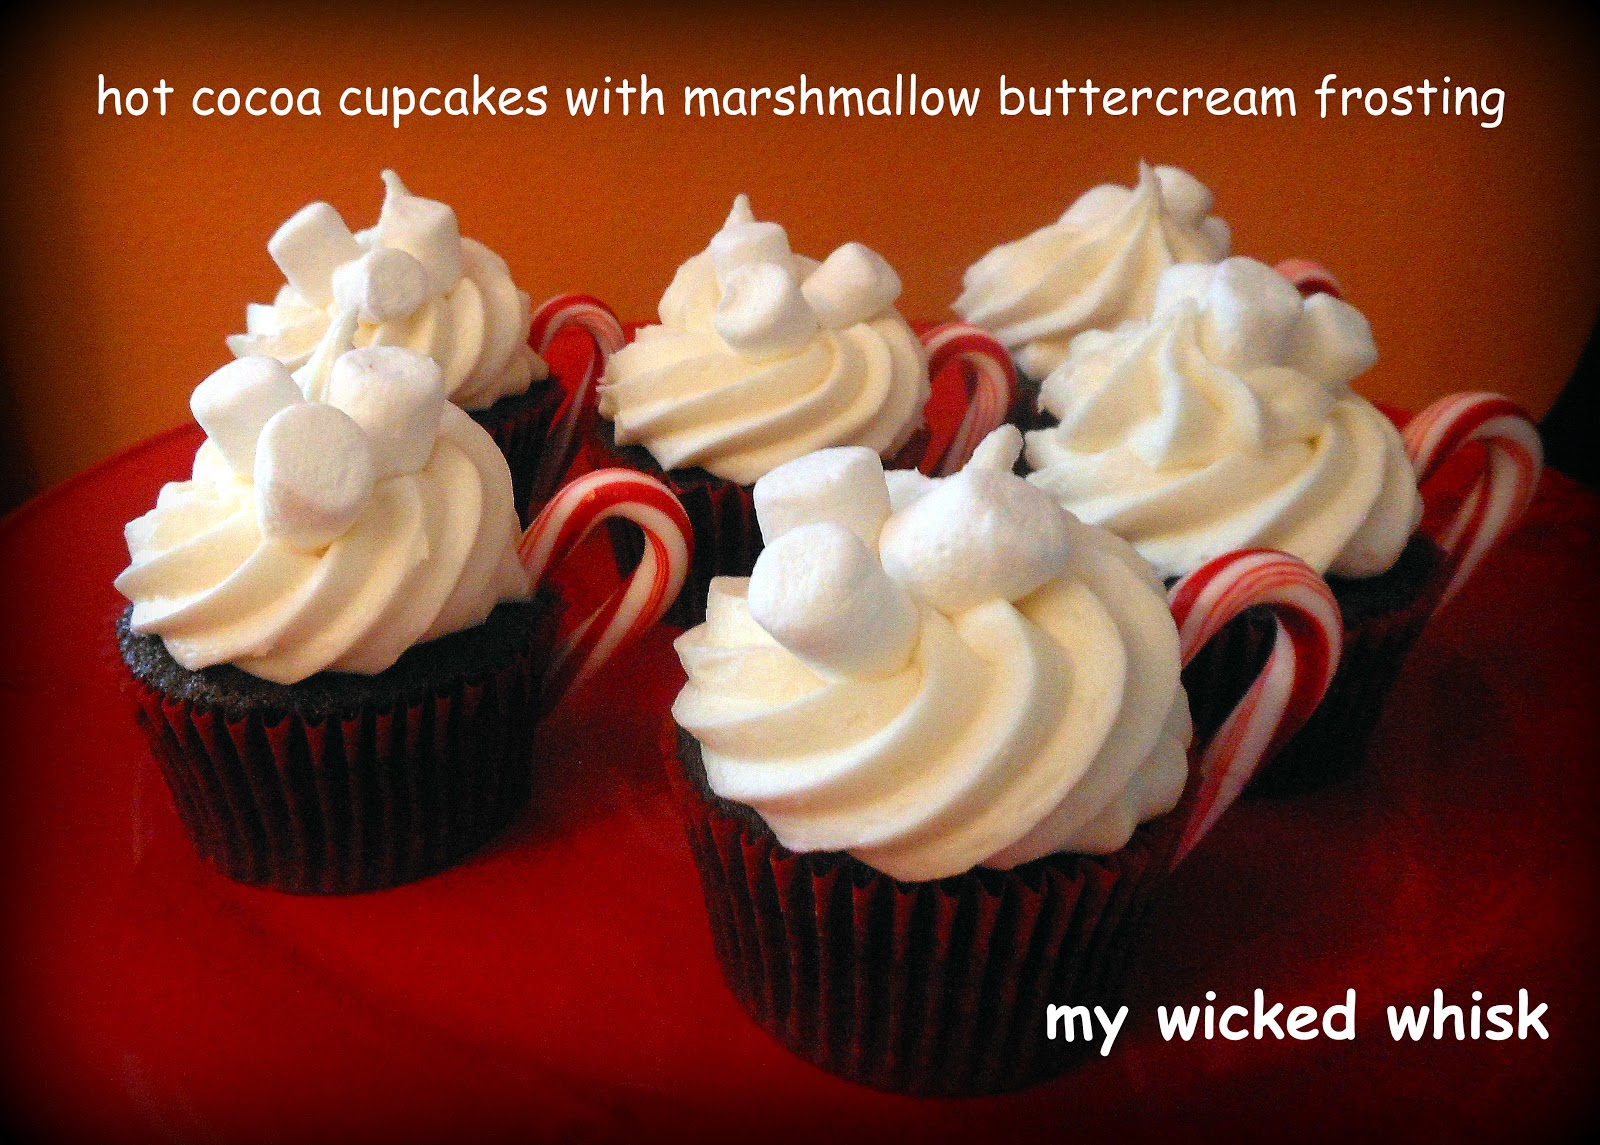 My Wicked Whisk: Hot Cocoa Cupcakes with Marshmallow Buttercream ...